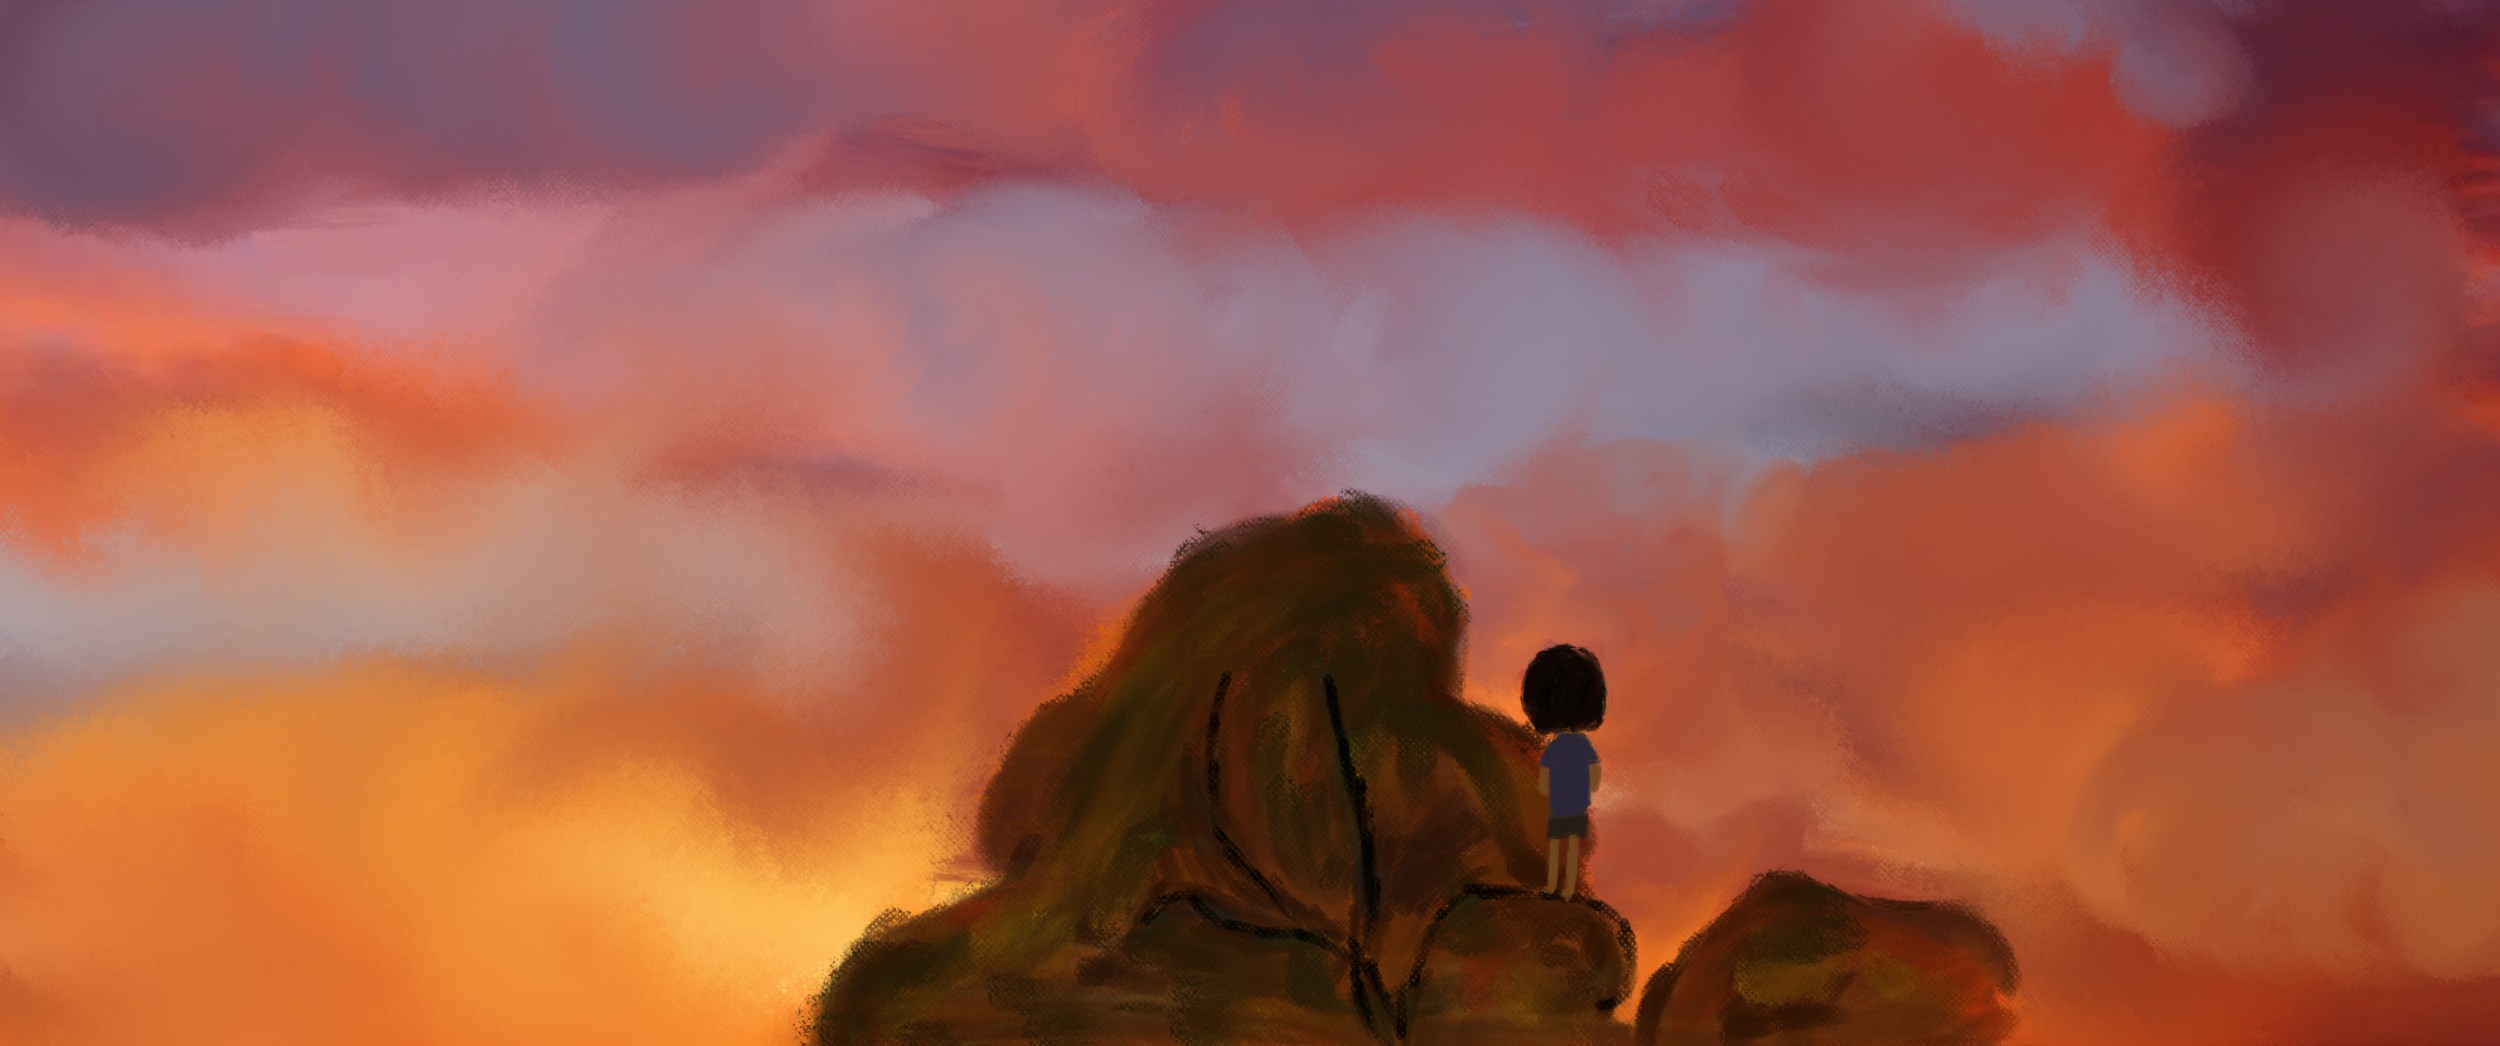 Boy_and_tree_6.png